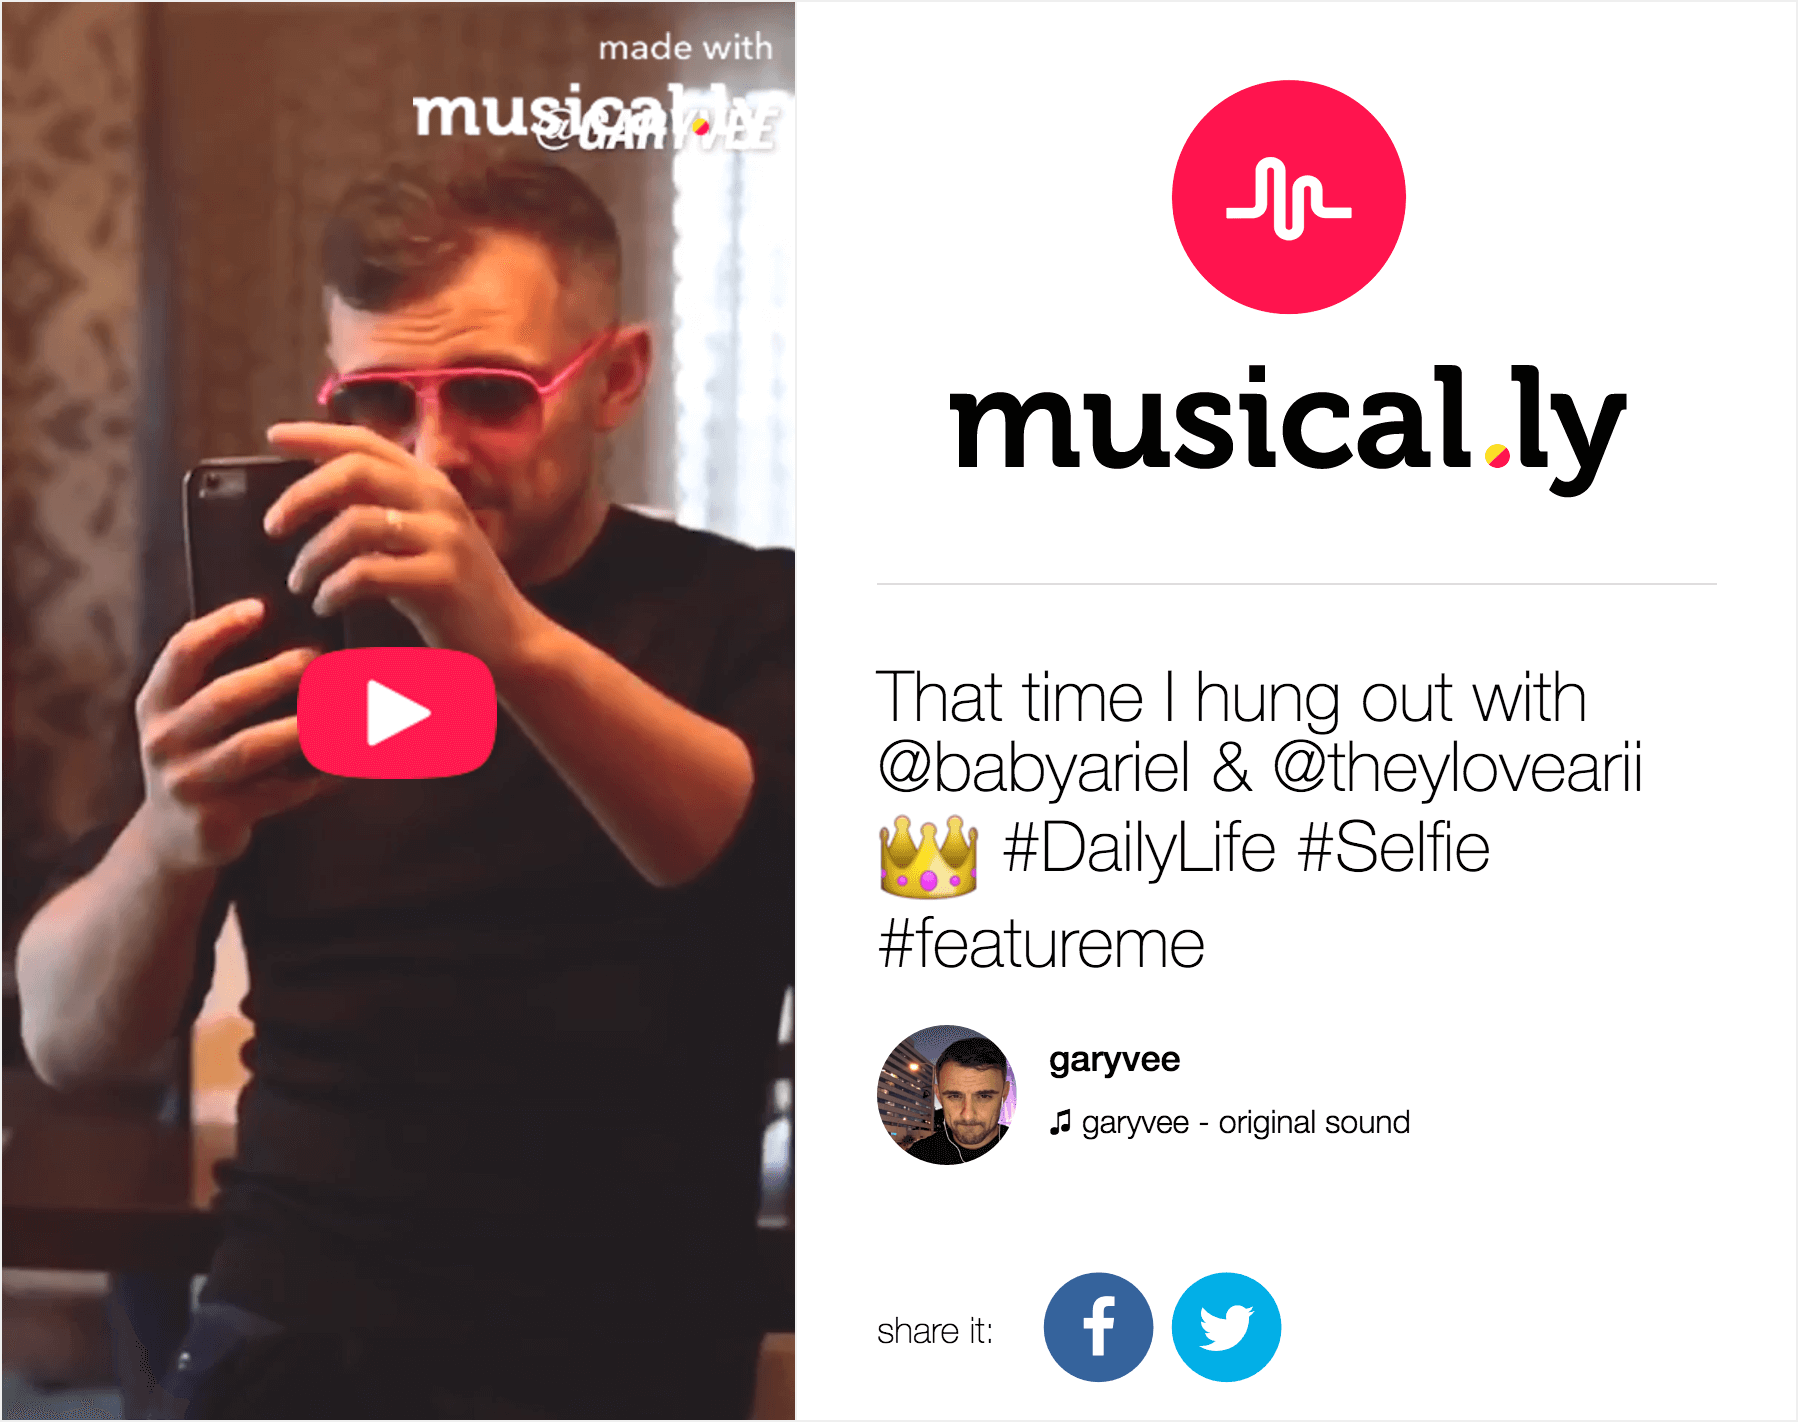 160720-musically-is-bae-inline-02